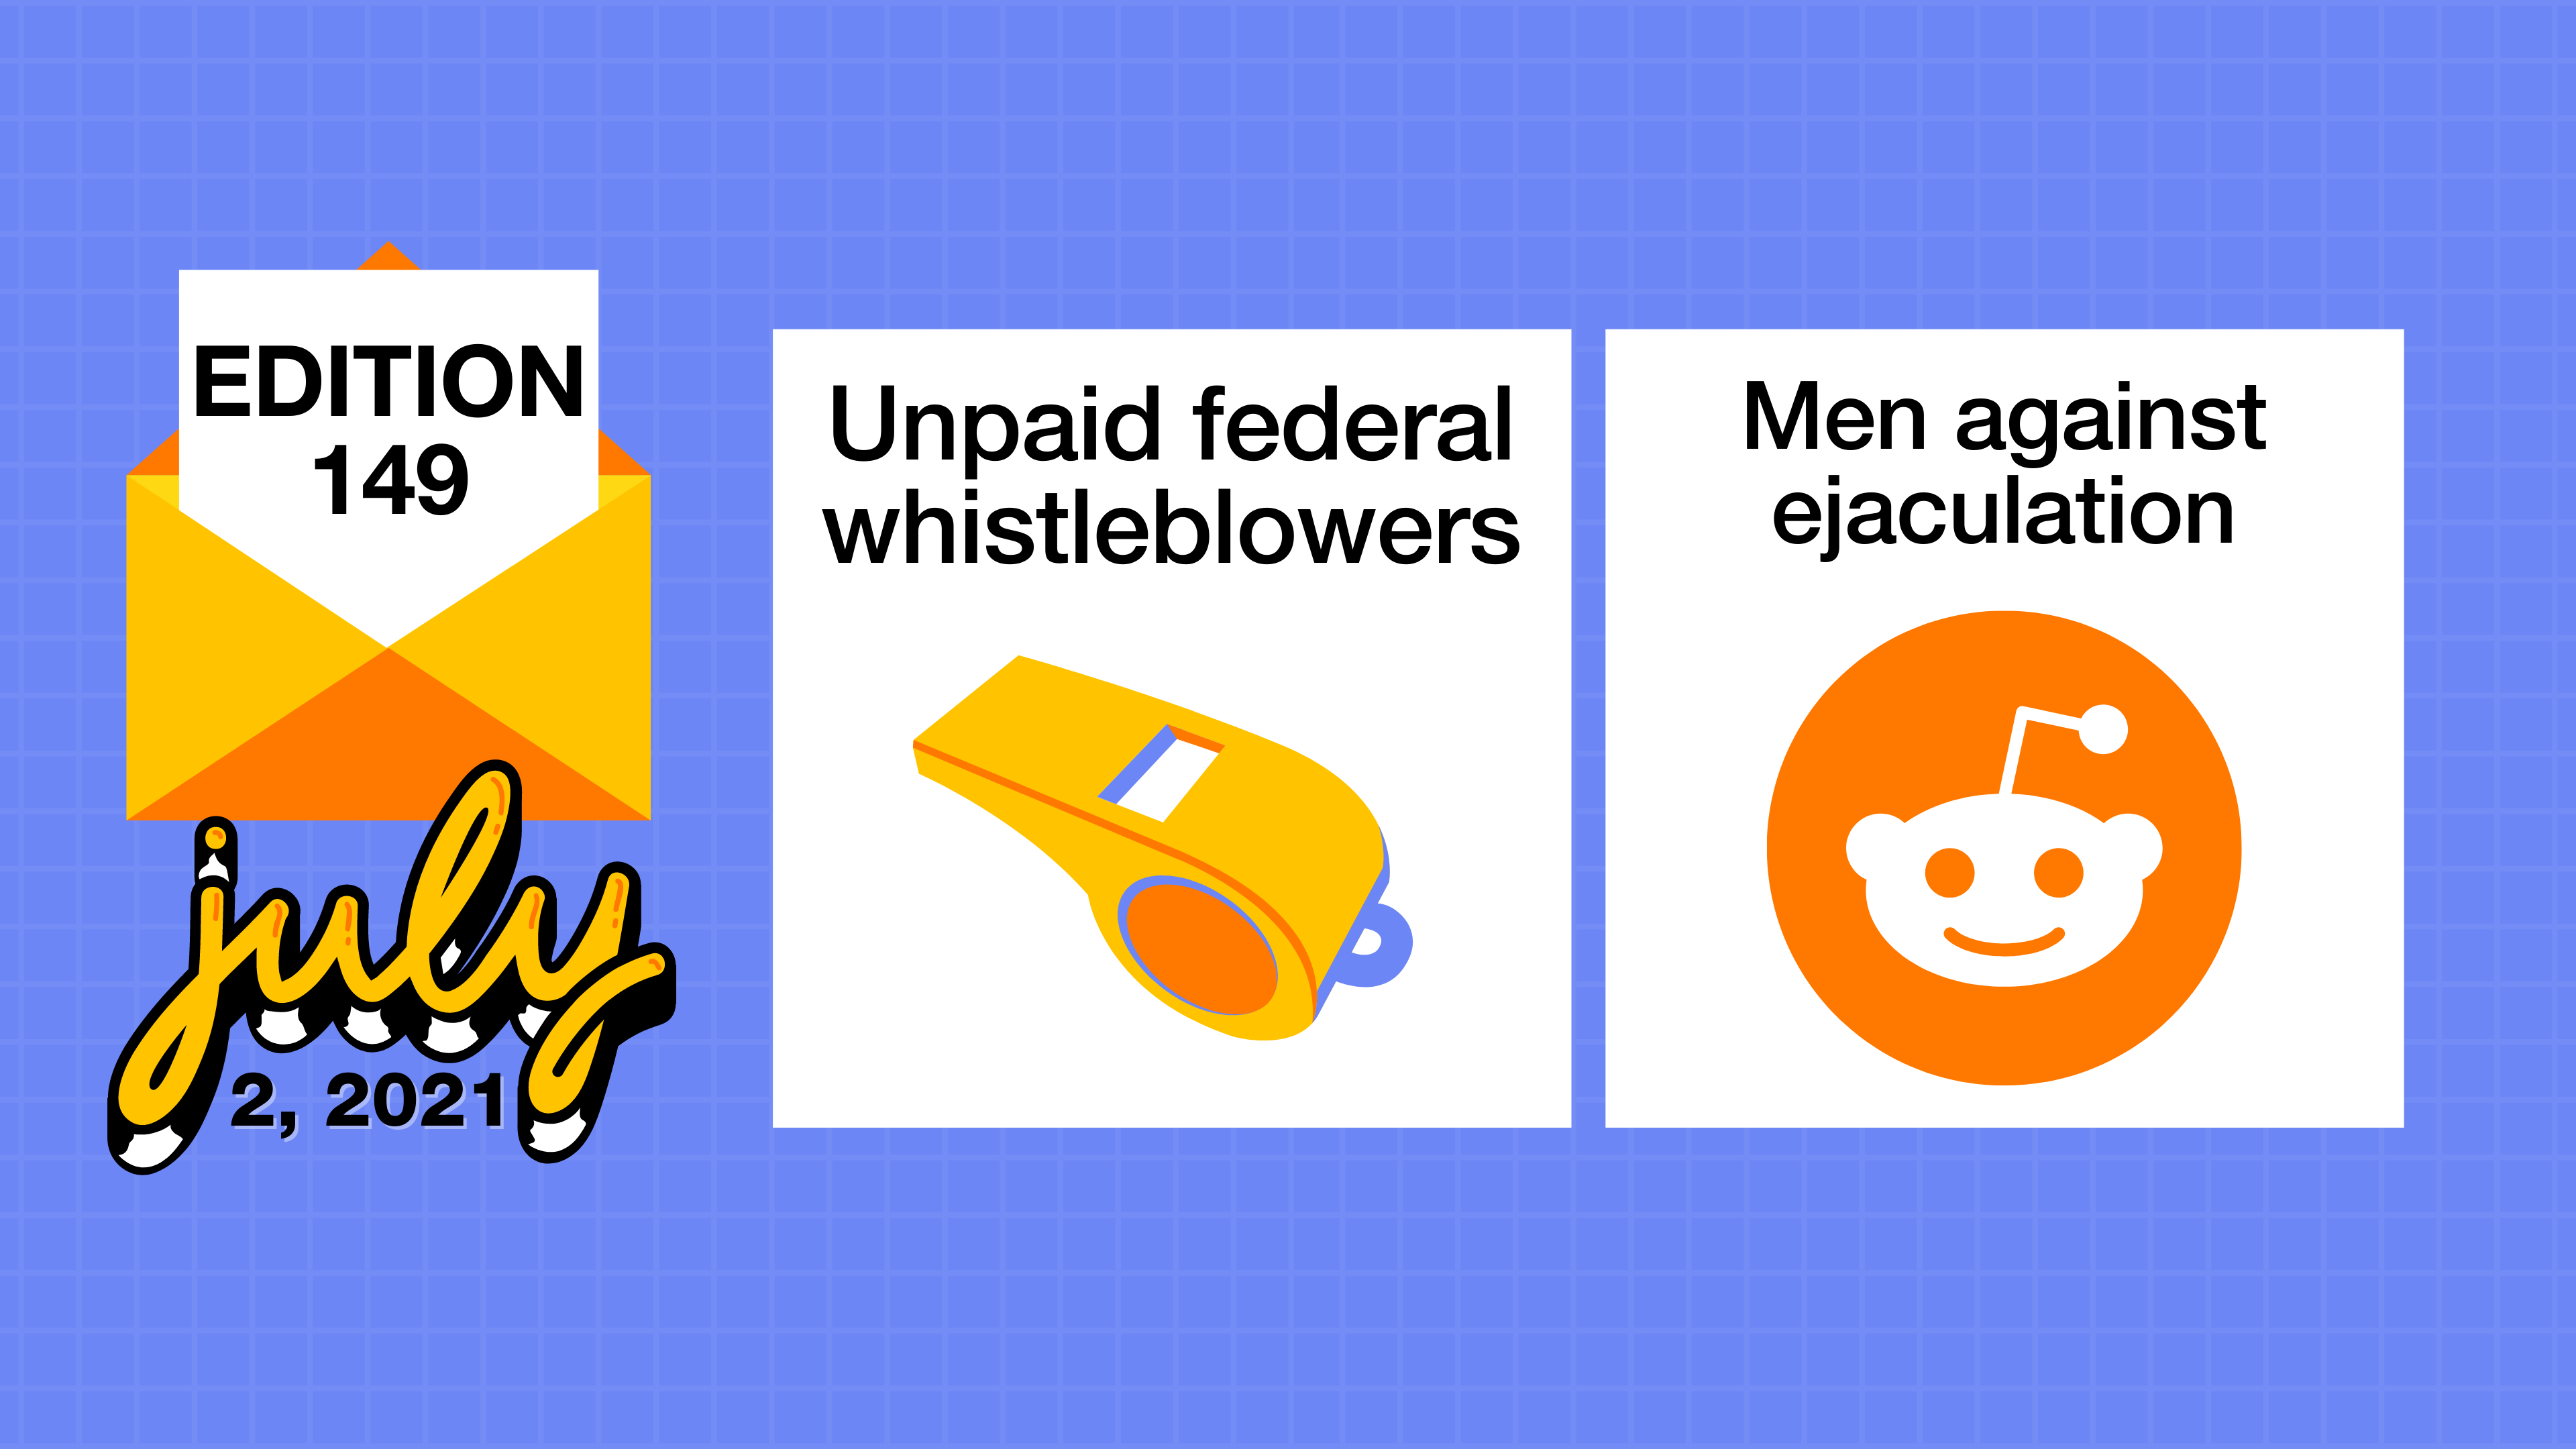 Unpaid federal whistleblowers and men against ejaculation